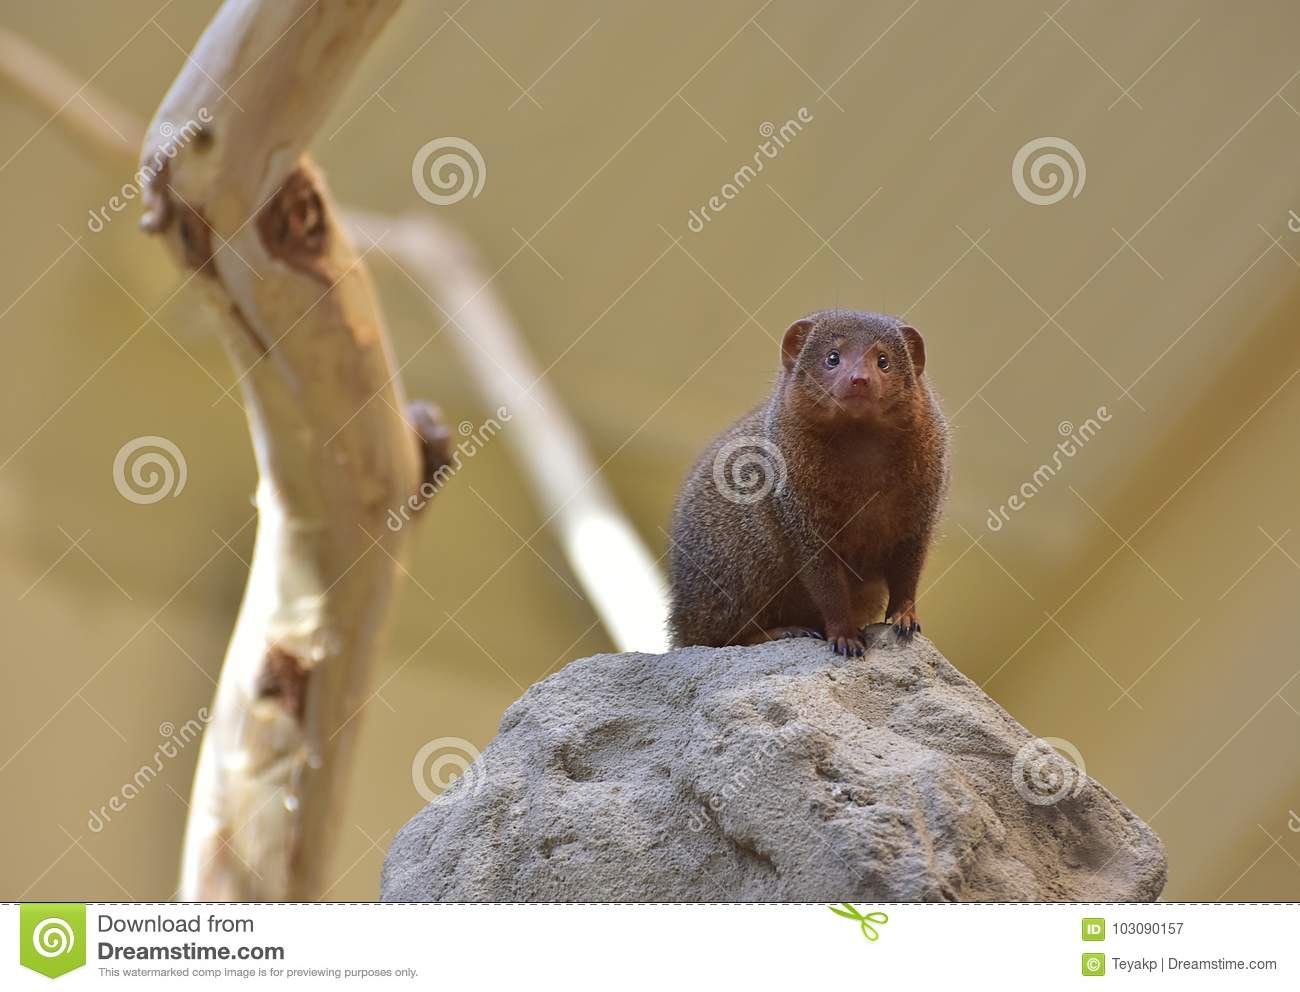 The common dwarf mongoose